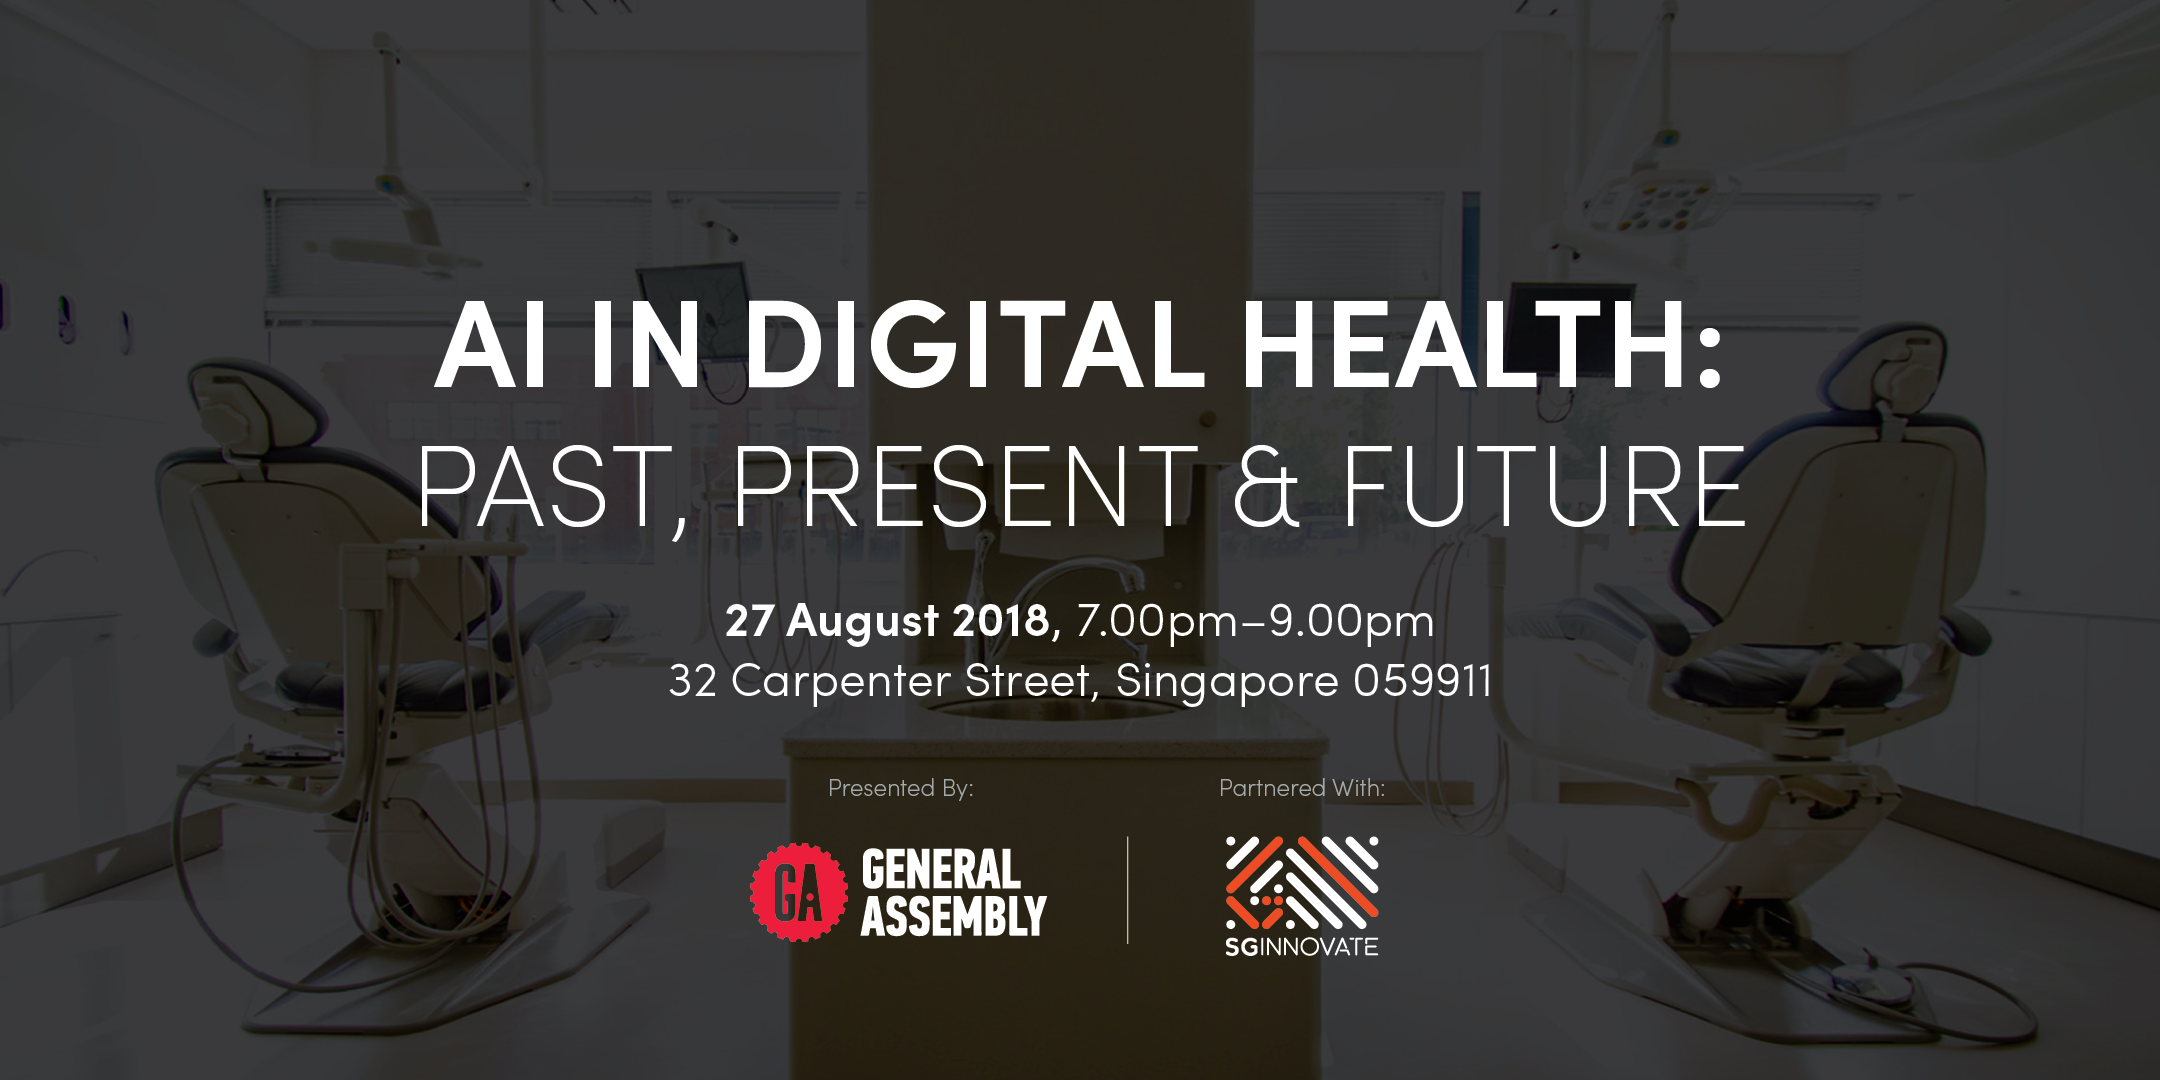 AI in Digital Health